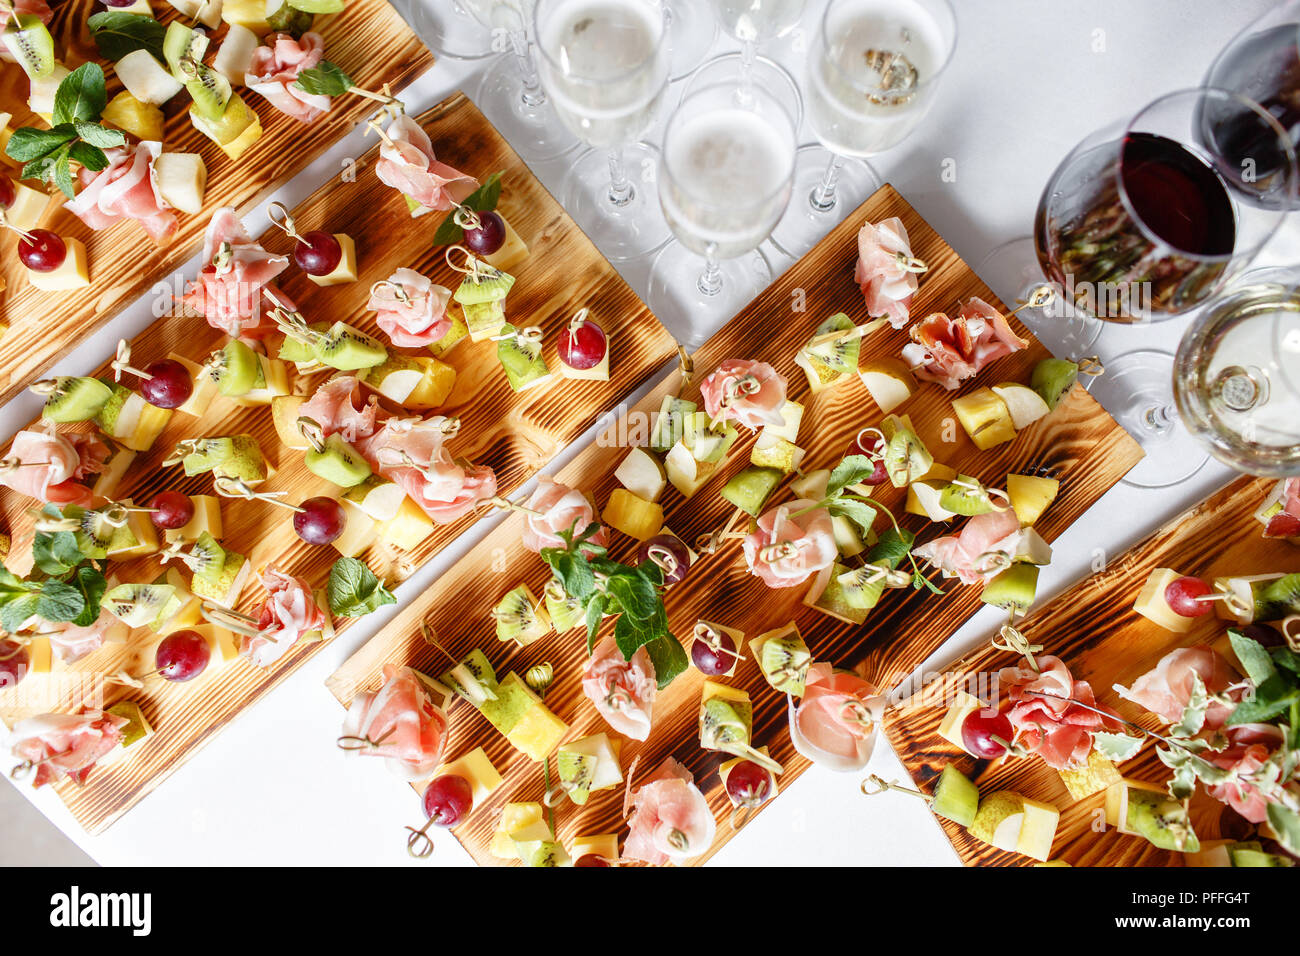 solemn happy new year banquet. Lot of glasses champagne or wine on the table in restaurant. buffet table with lots of delicious snacks. canapes, bruschetta, and little desserts on wooden plate board - Stock Image